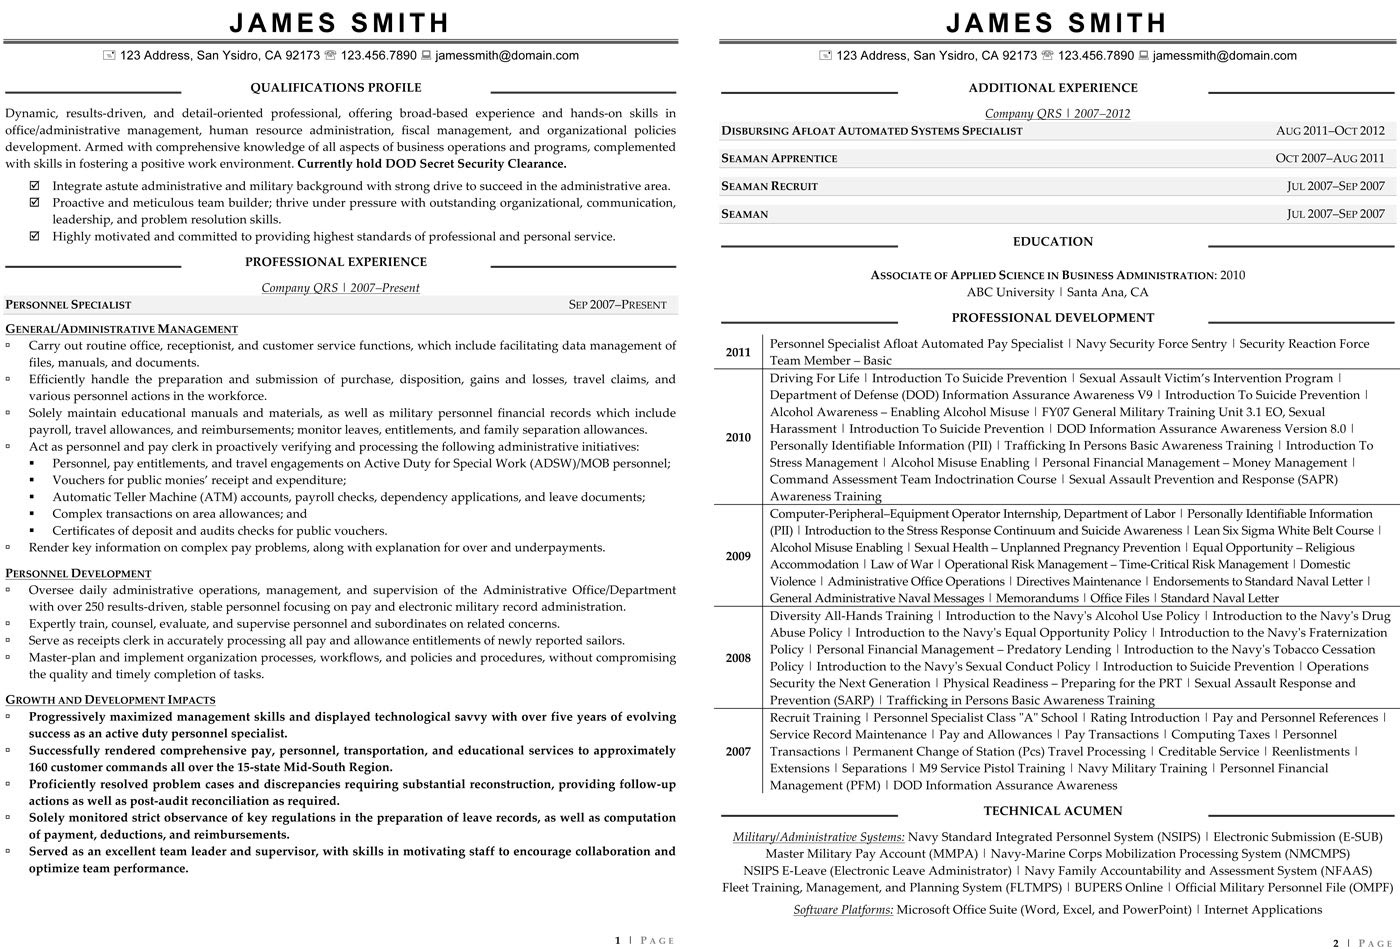 Human Resource Generalist Resume  Human Resources Sample Resume